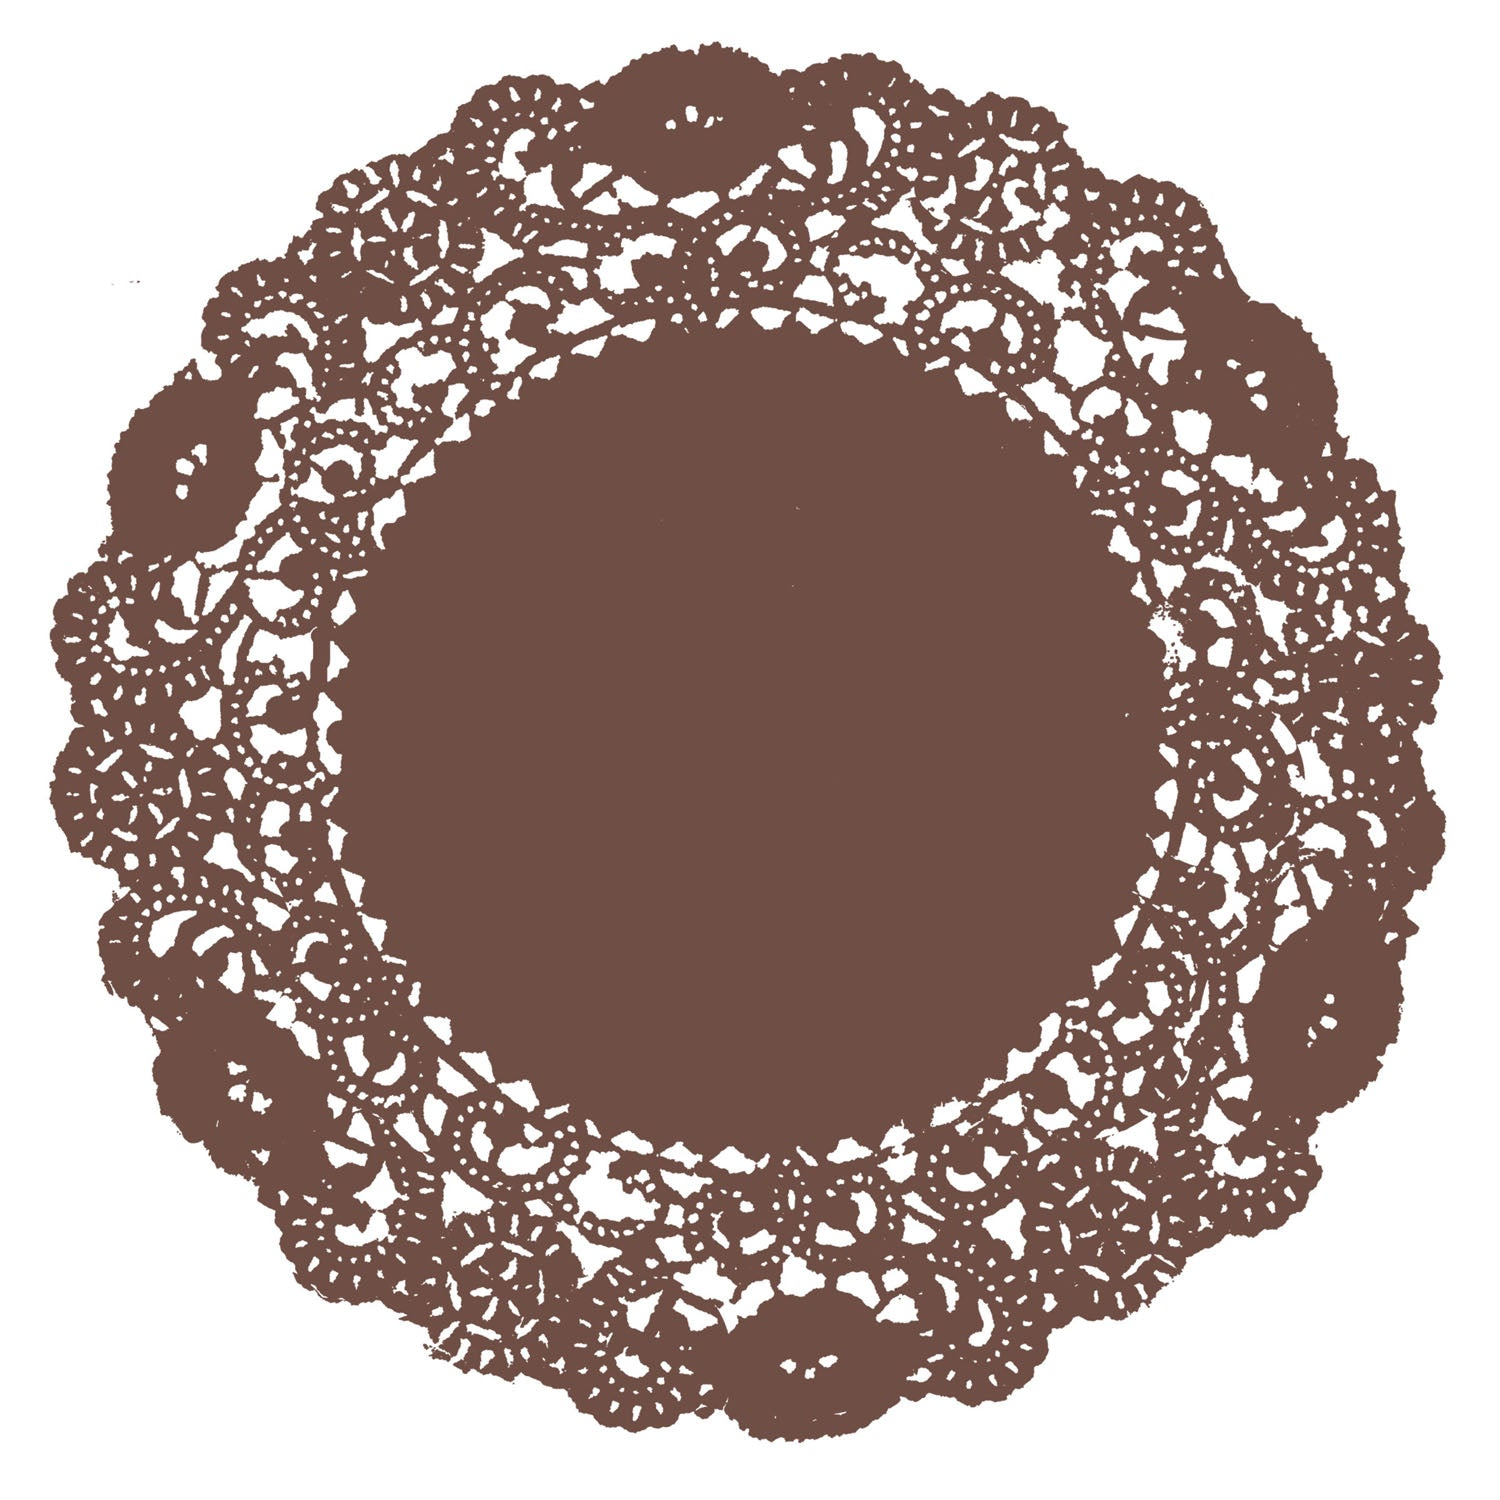 Chocolate Brown Doily